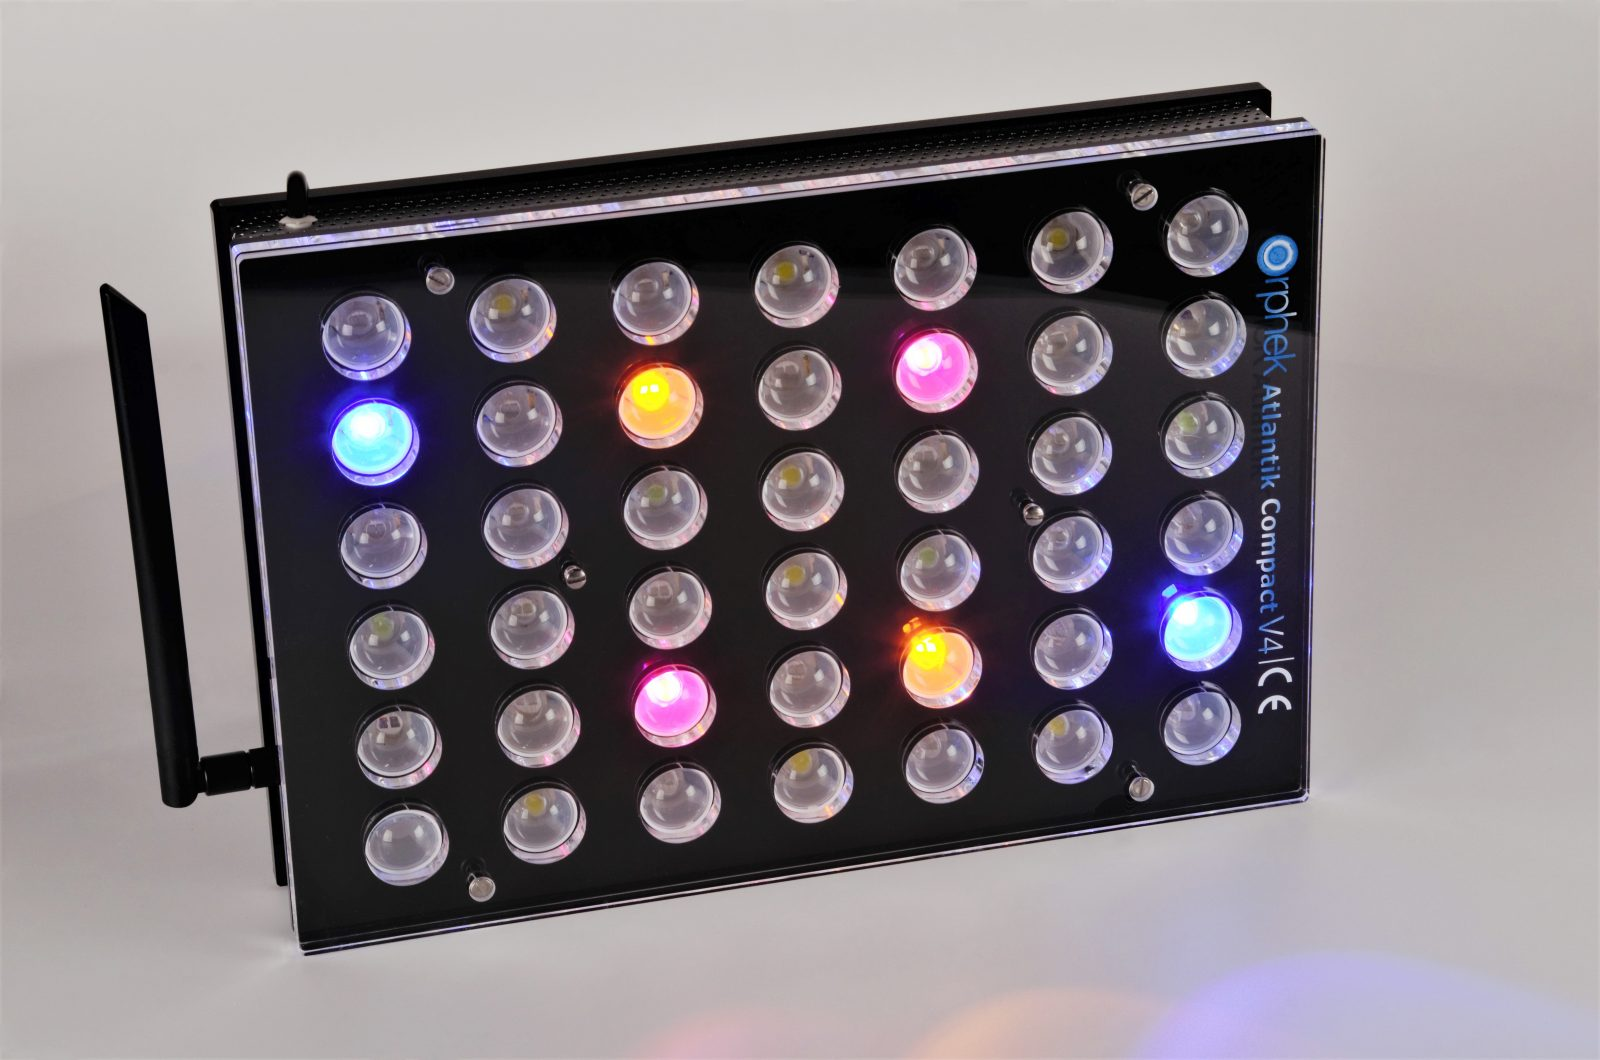 Orphek-Aquarium-LED-Lighting-Atlantik-کمپیکٹ - V4-روشنی- چینل 4